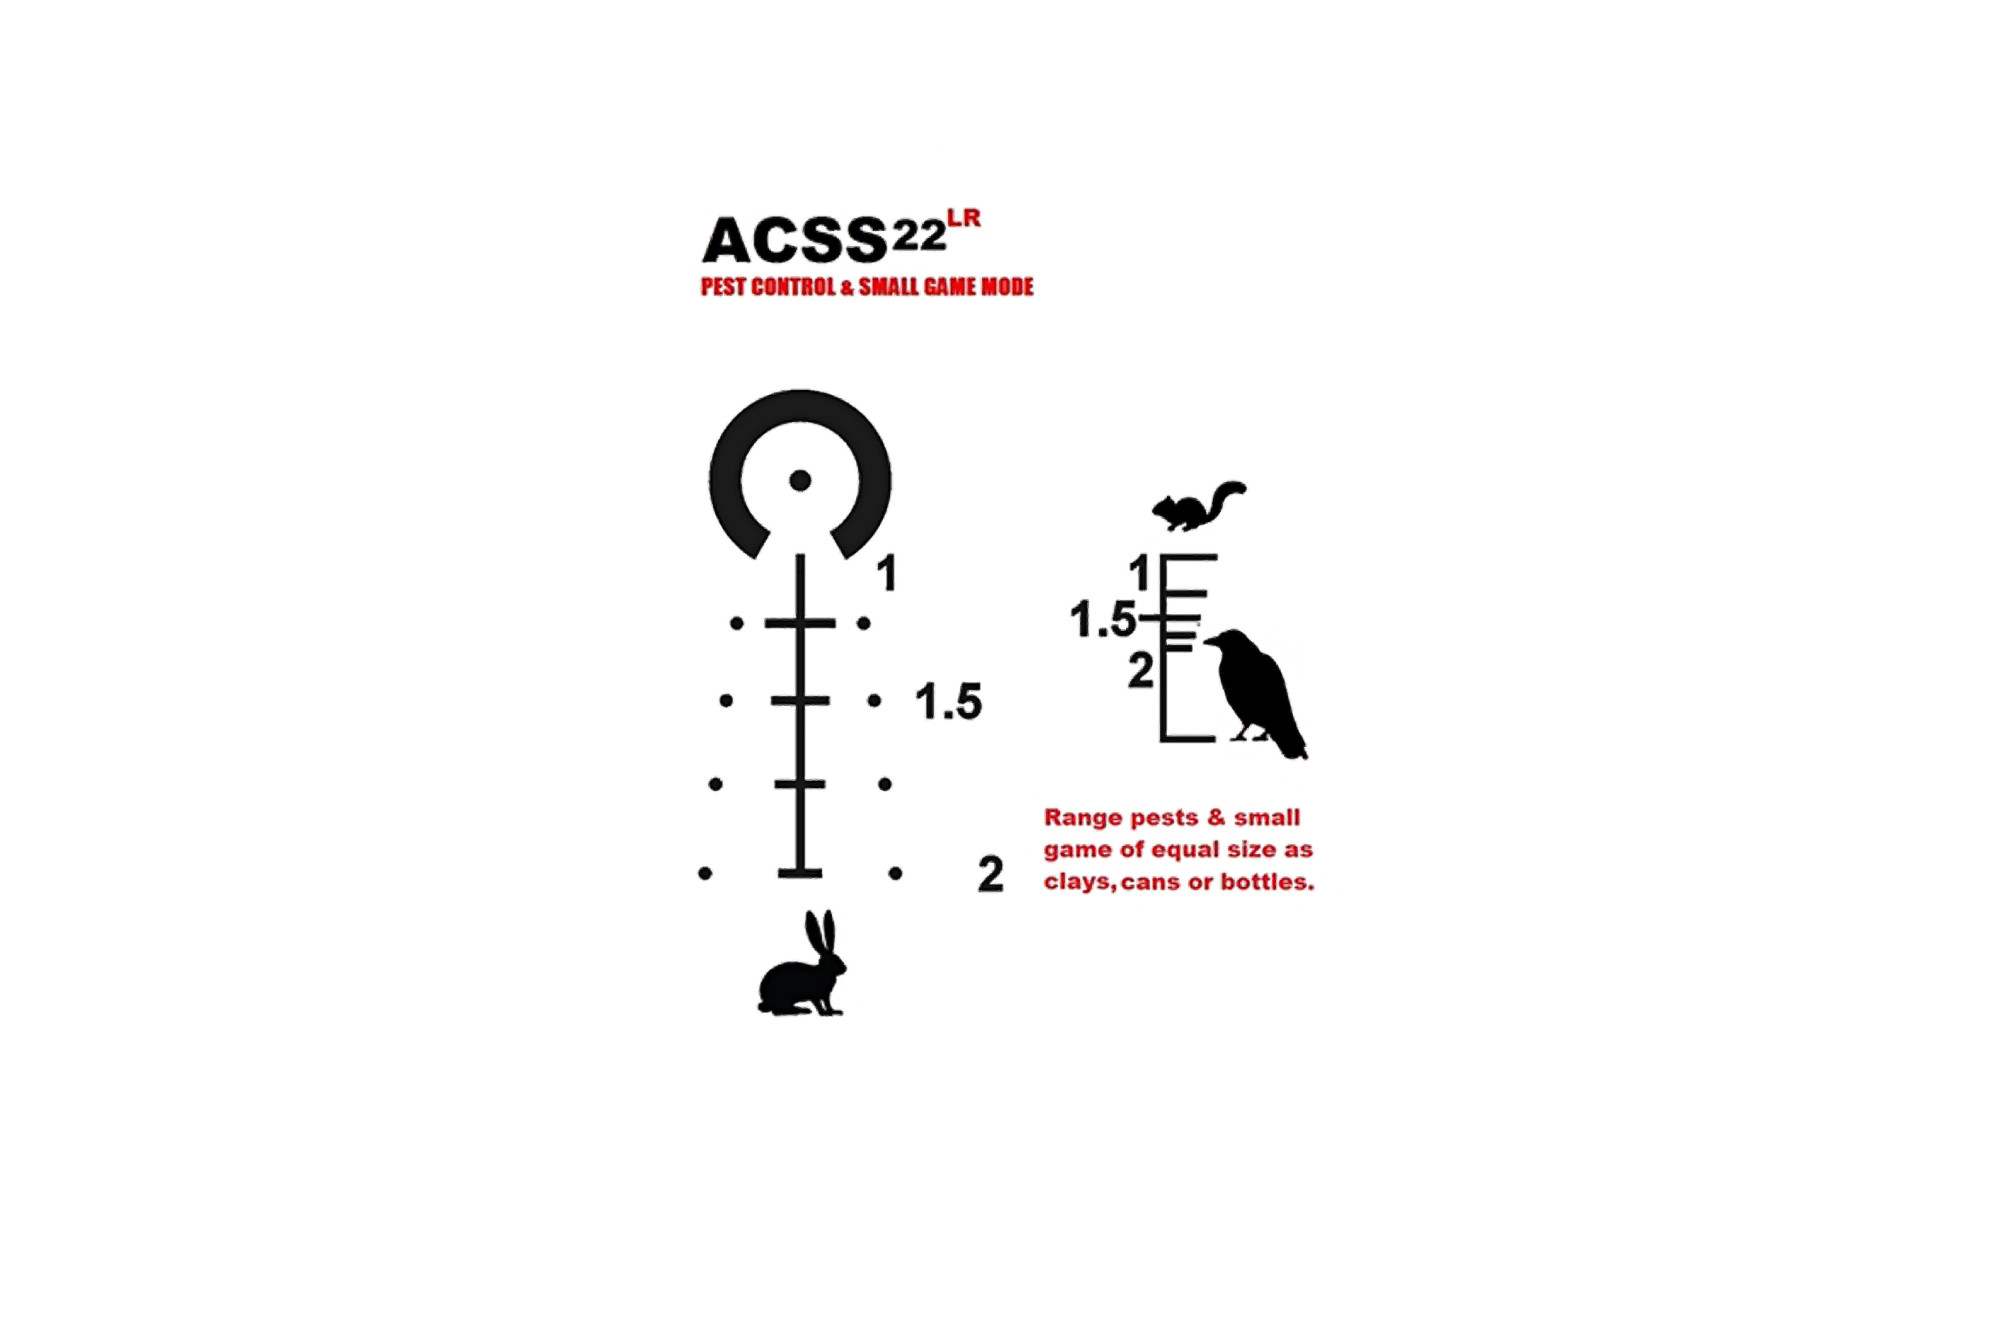 The 22lr acss reticle is great for range estimation and pest control or hunting